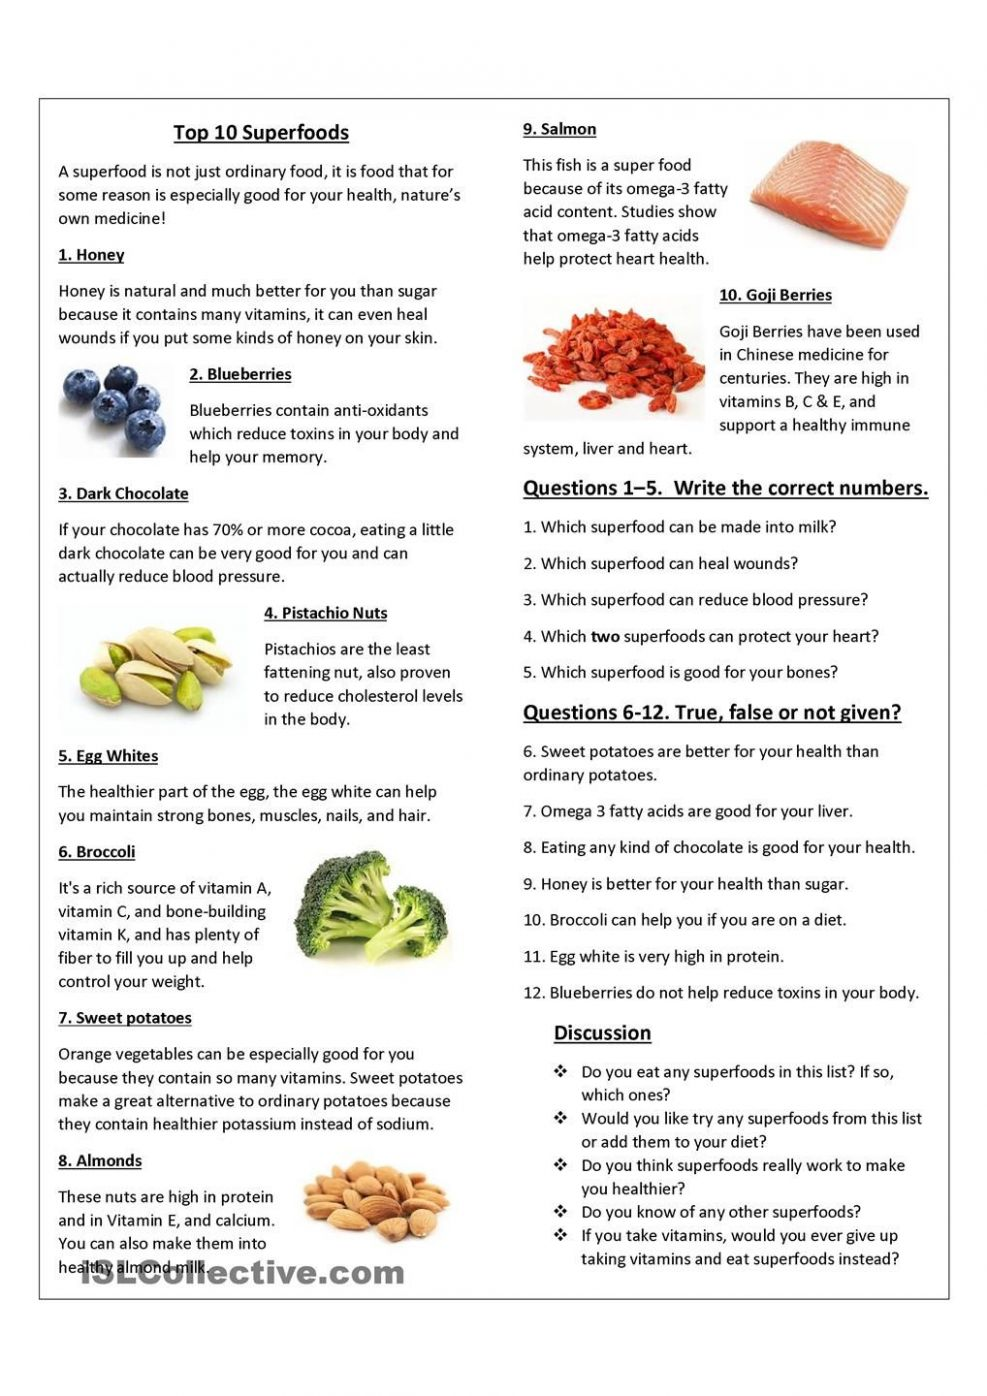 Top 9 Superfoods | Comida saludable, Alimentacion, Comida - Healthy Recipes Printable